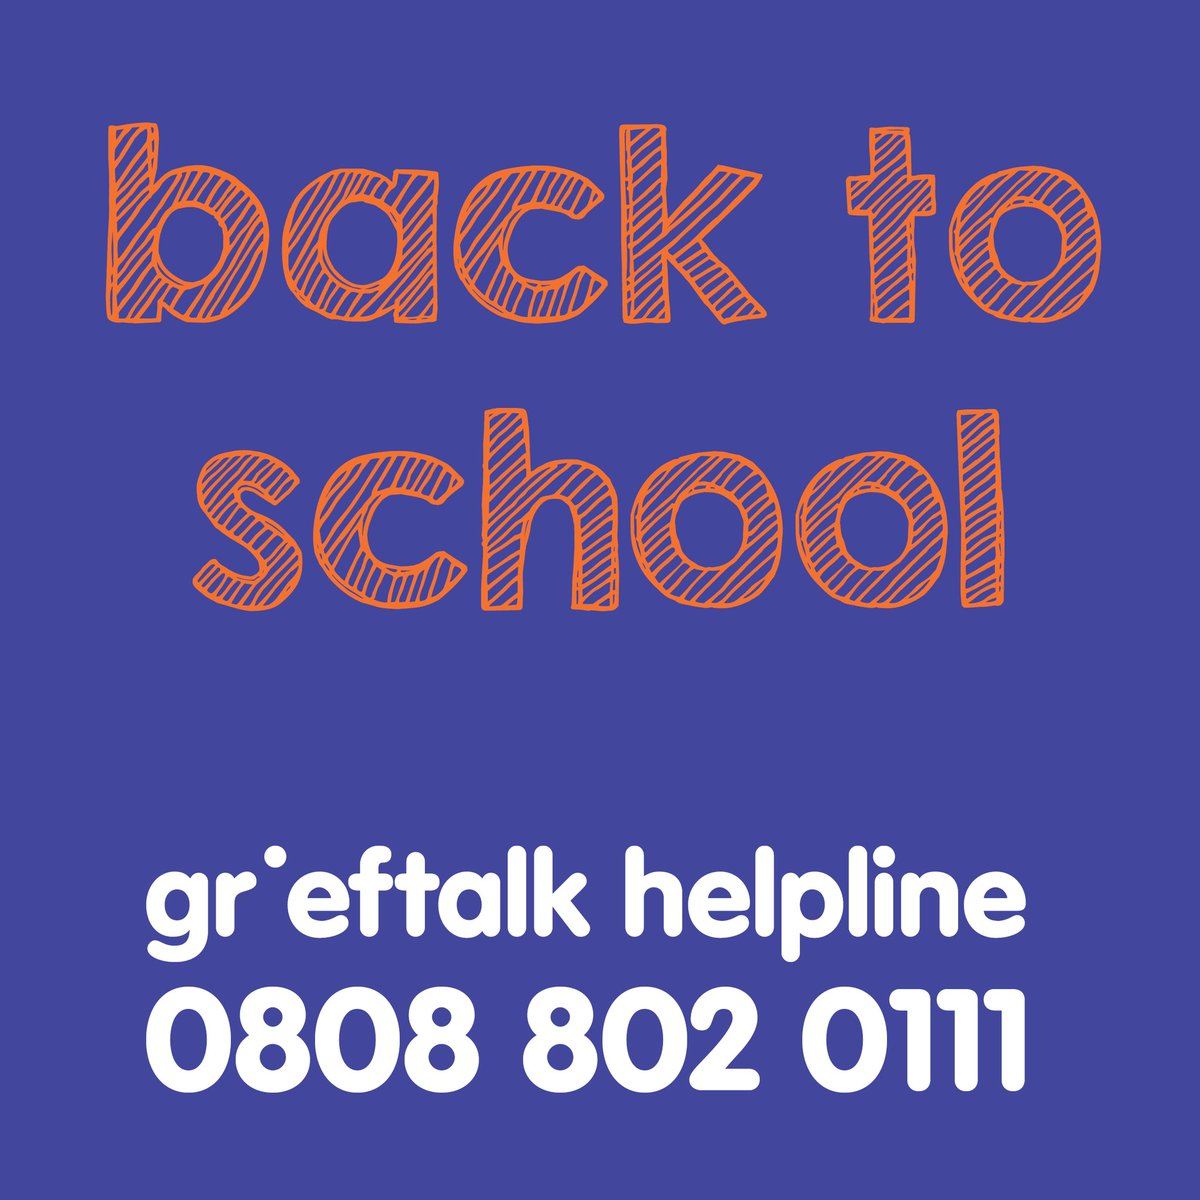 As we prepare for children and young people to start returning to school tomorrow, we know anxieties and stress levels will be high. Here are some tips from on helping support children and young people. https://t.co/sSwGgY9lSc #bereaved #teacher #pupil #student #covid19 #school https://t.co/FoTYy070i0